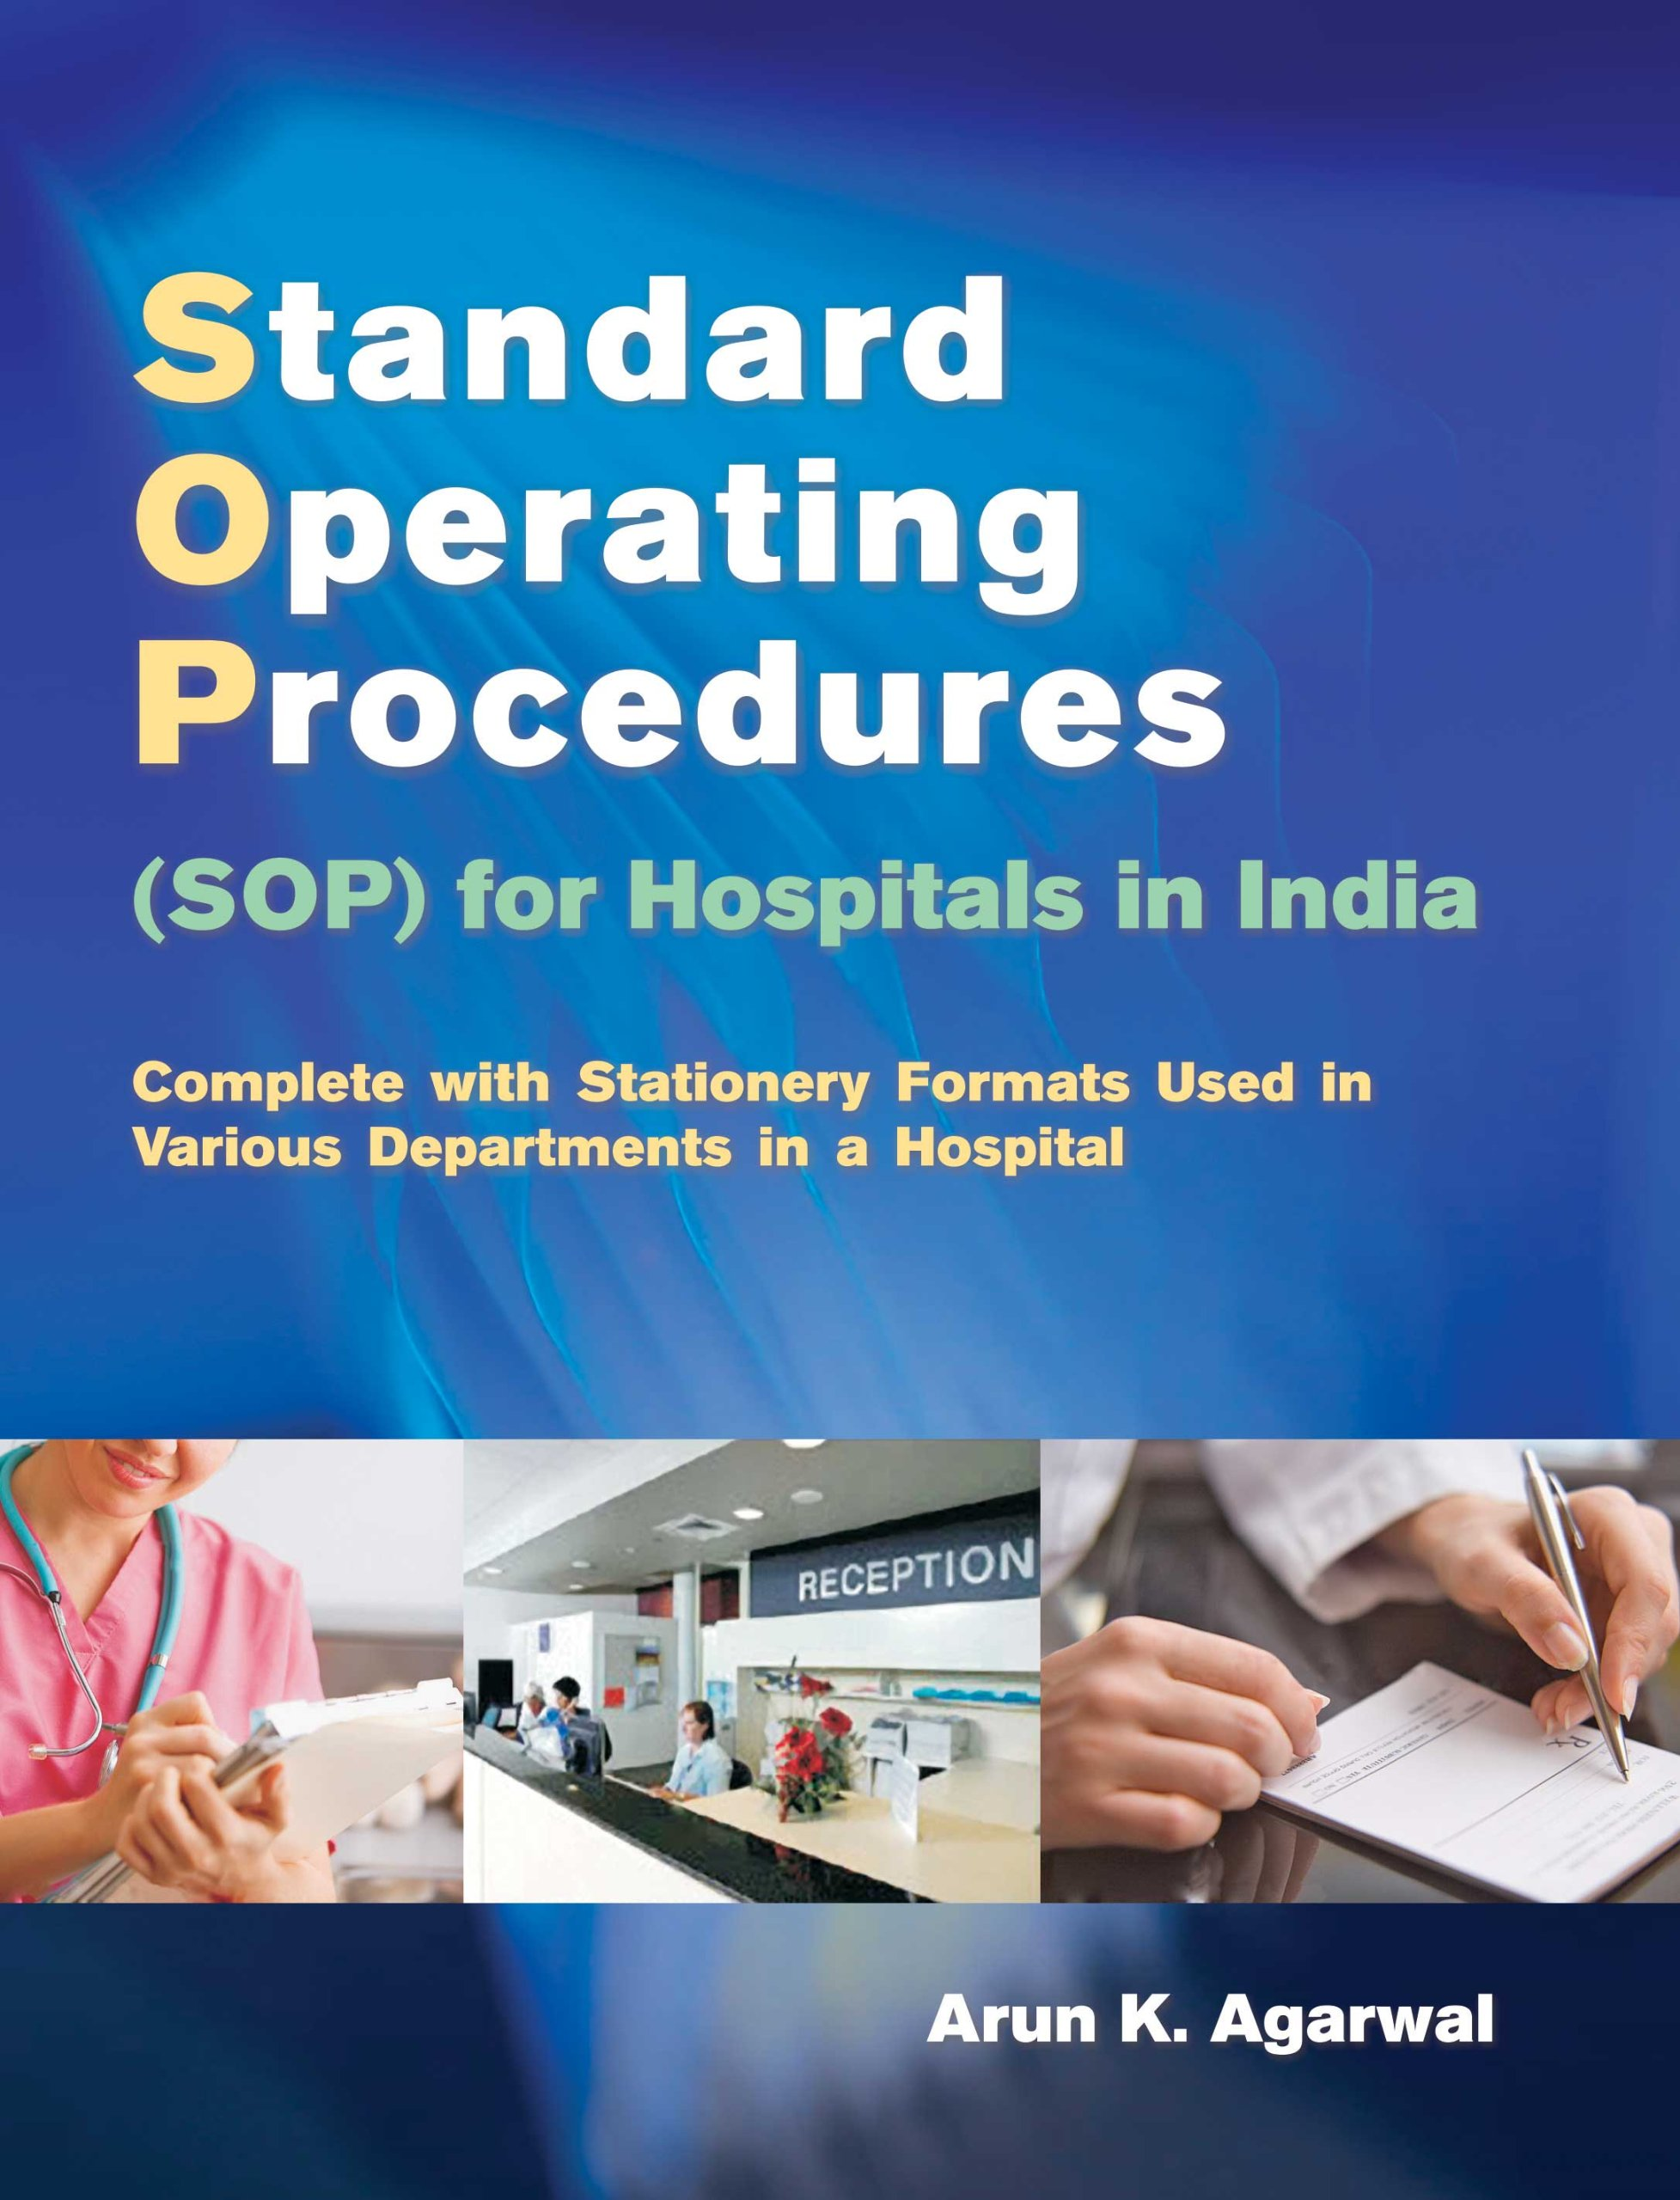 Buy Standard Operating Procedures: For Hospital In India Book Online At Low  Prices In India | Standard Operating Procedures: For Hospital In India  Reviews ...